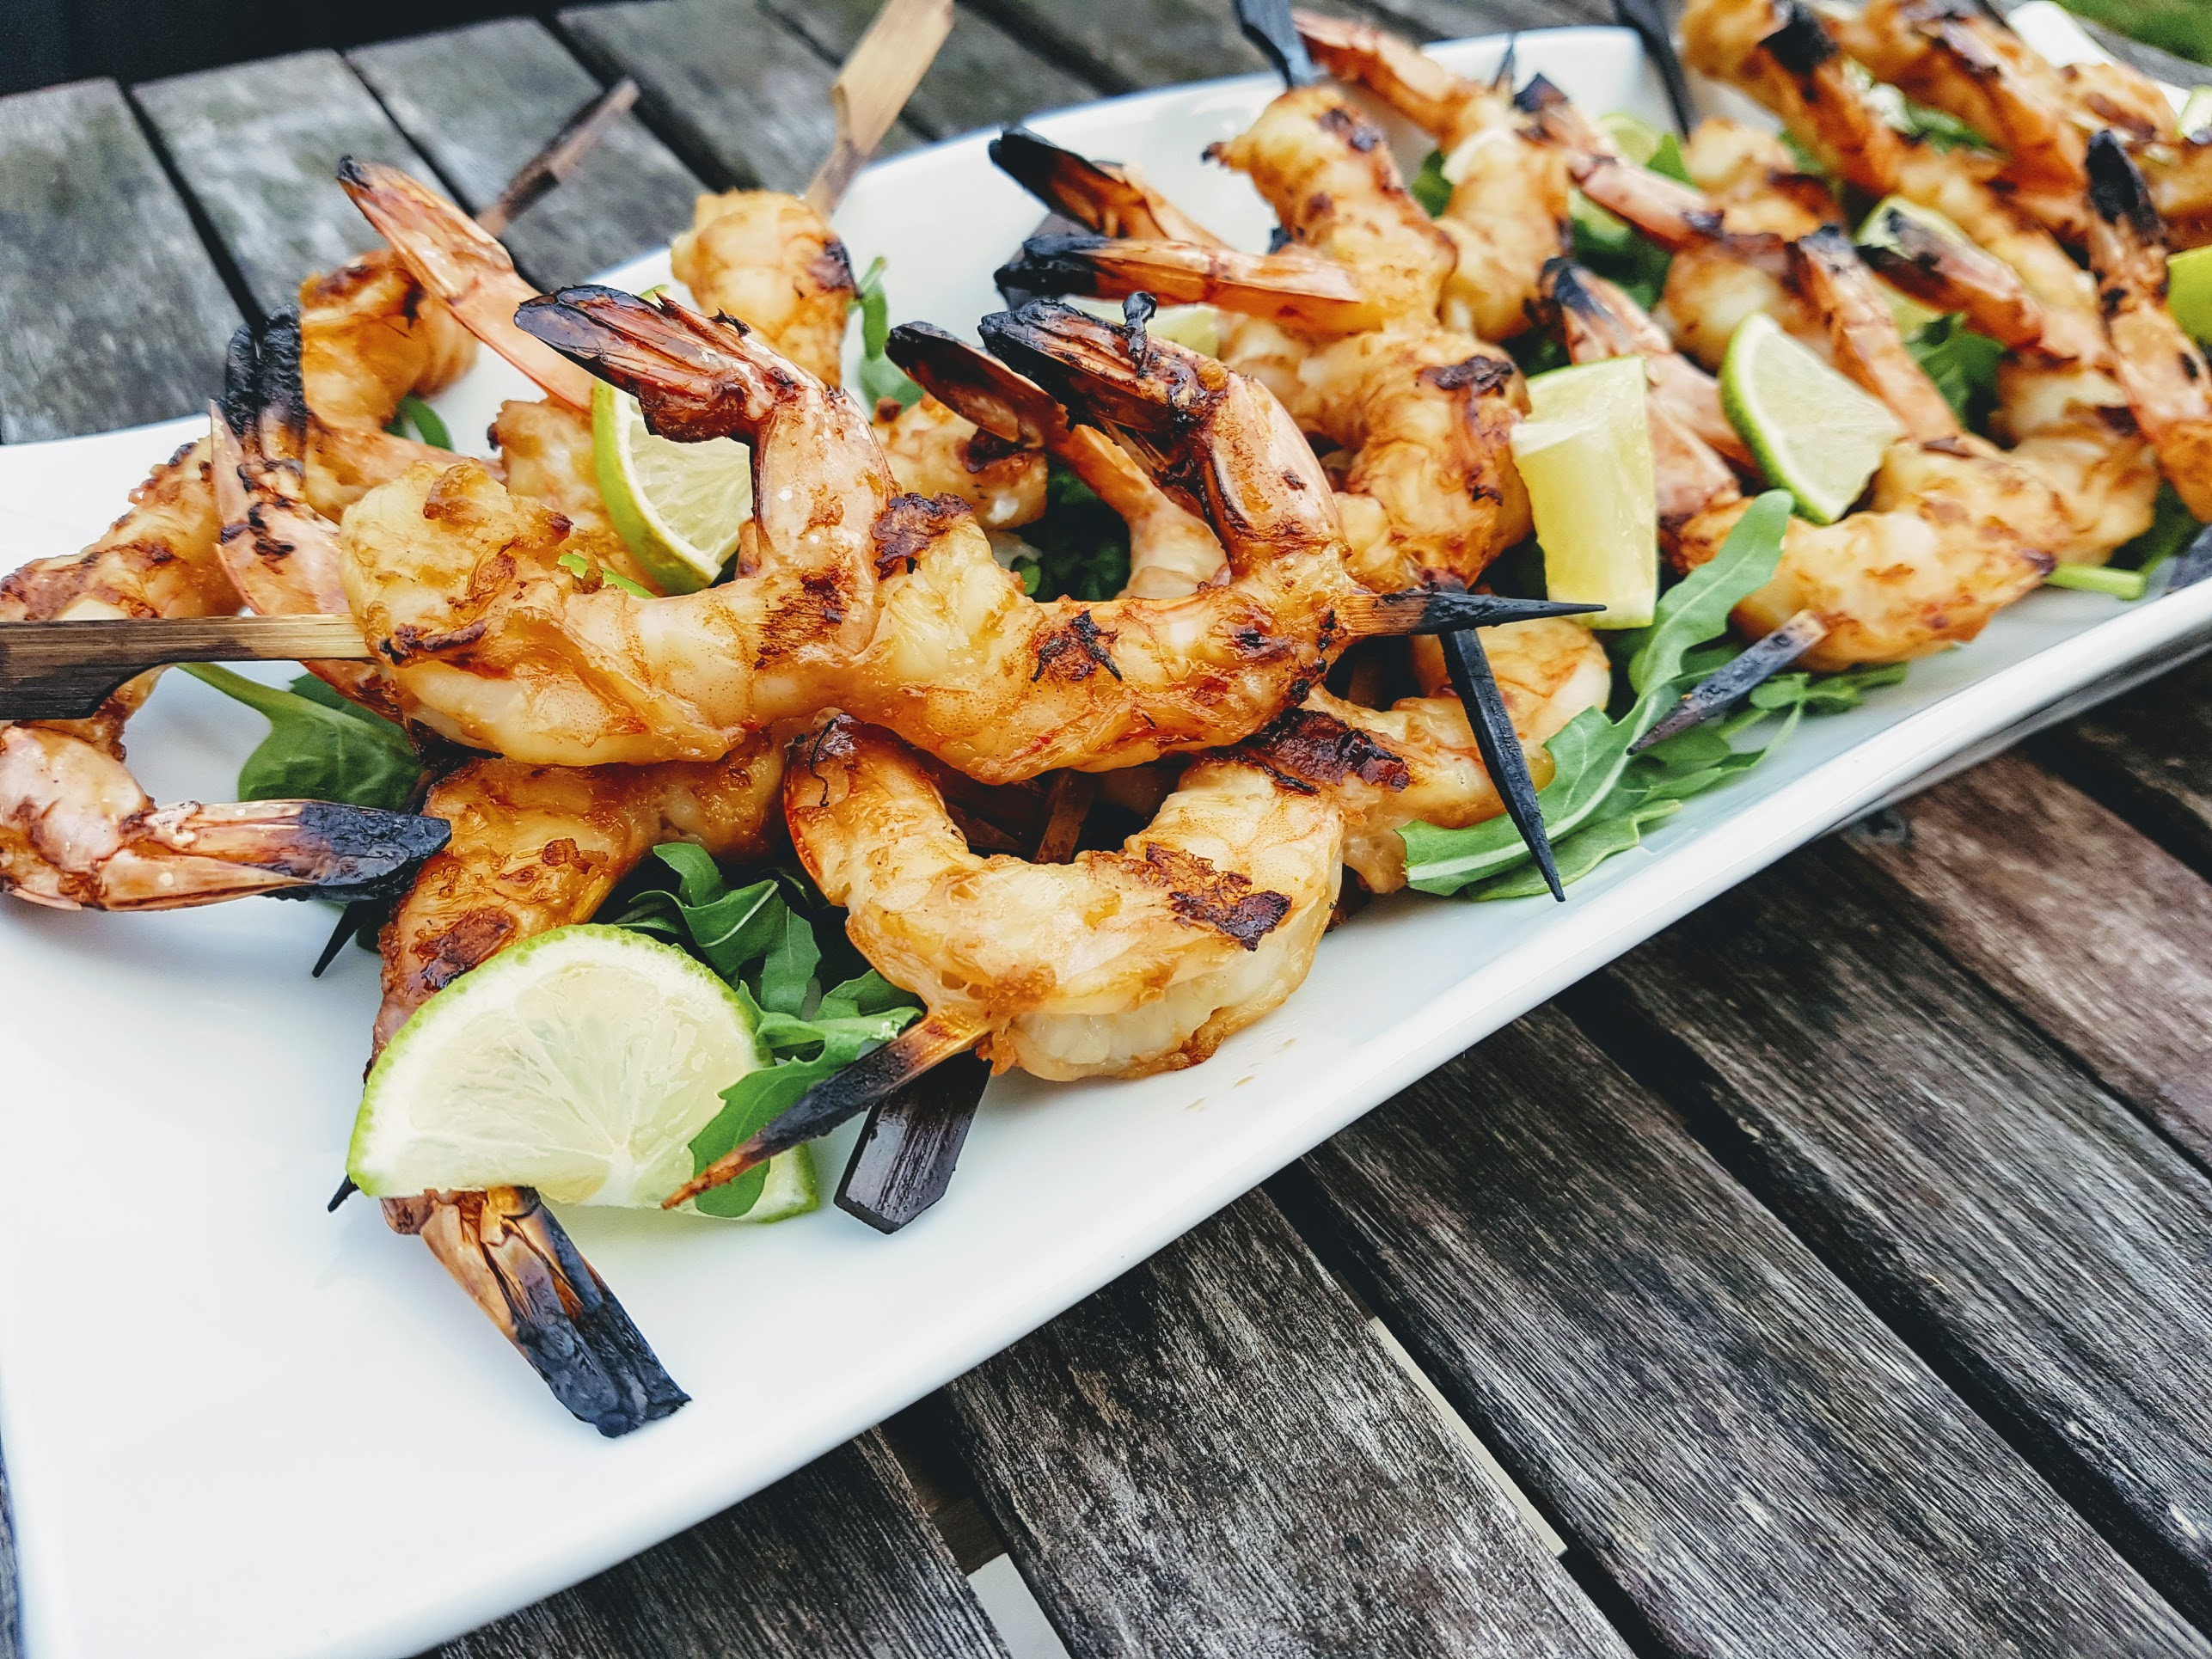 Pile of grilled shrimp skewers on a bed of arugula